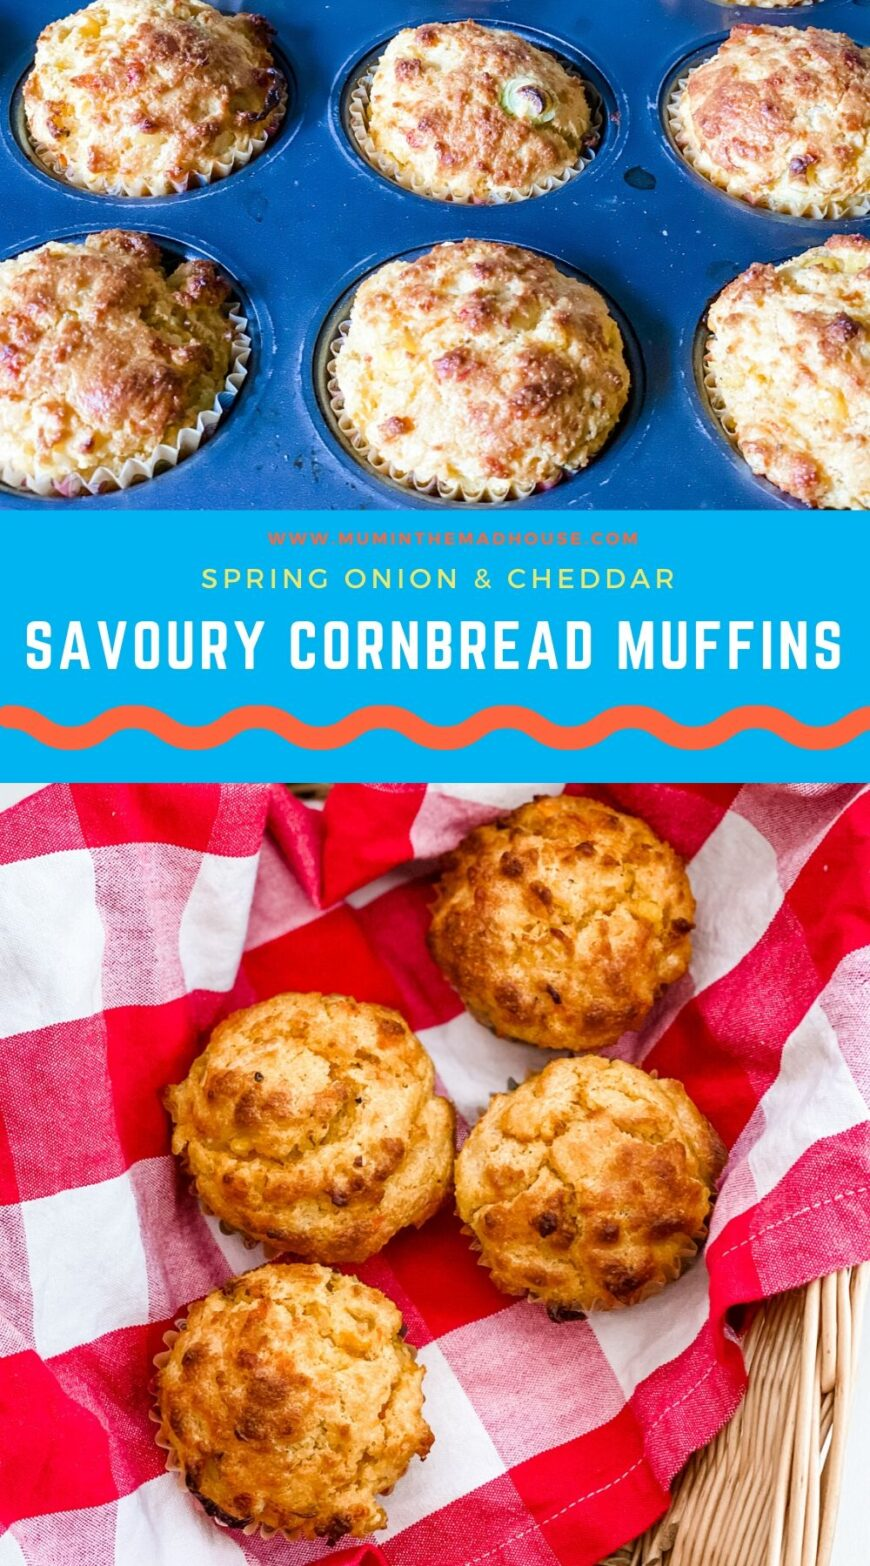 Savoury Cornbread Muffins are the perfect side dish for chilli or even breakfast.  Simple to make, but a real game changer